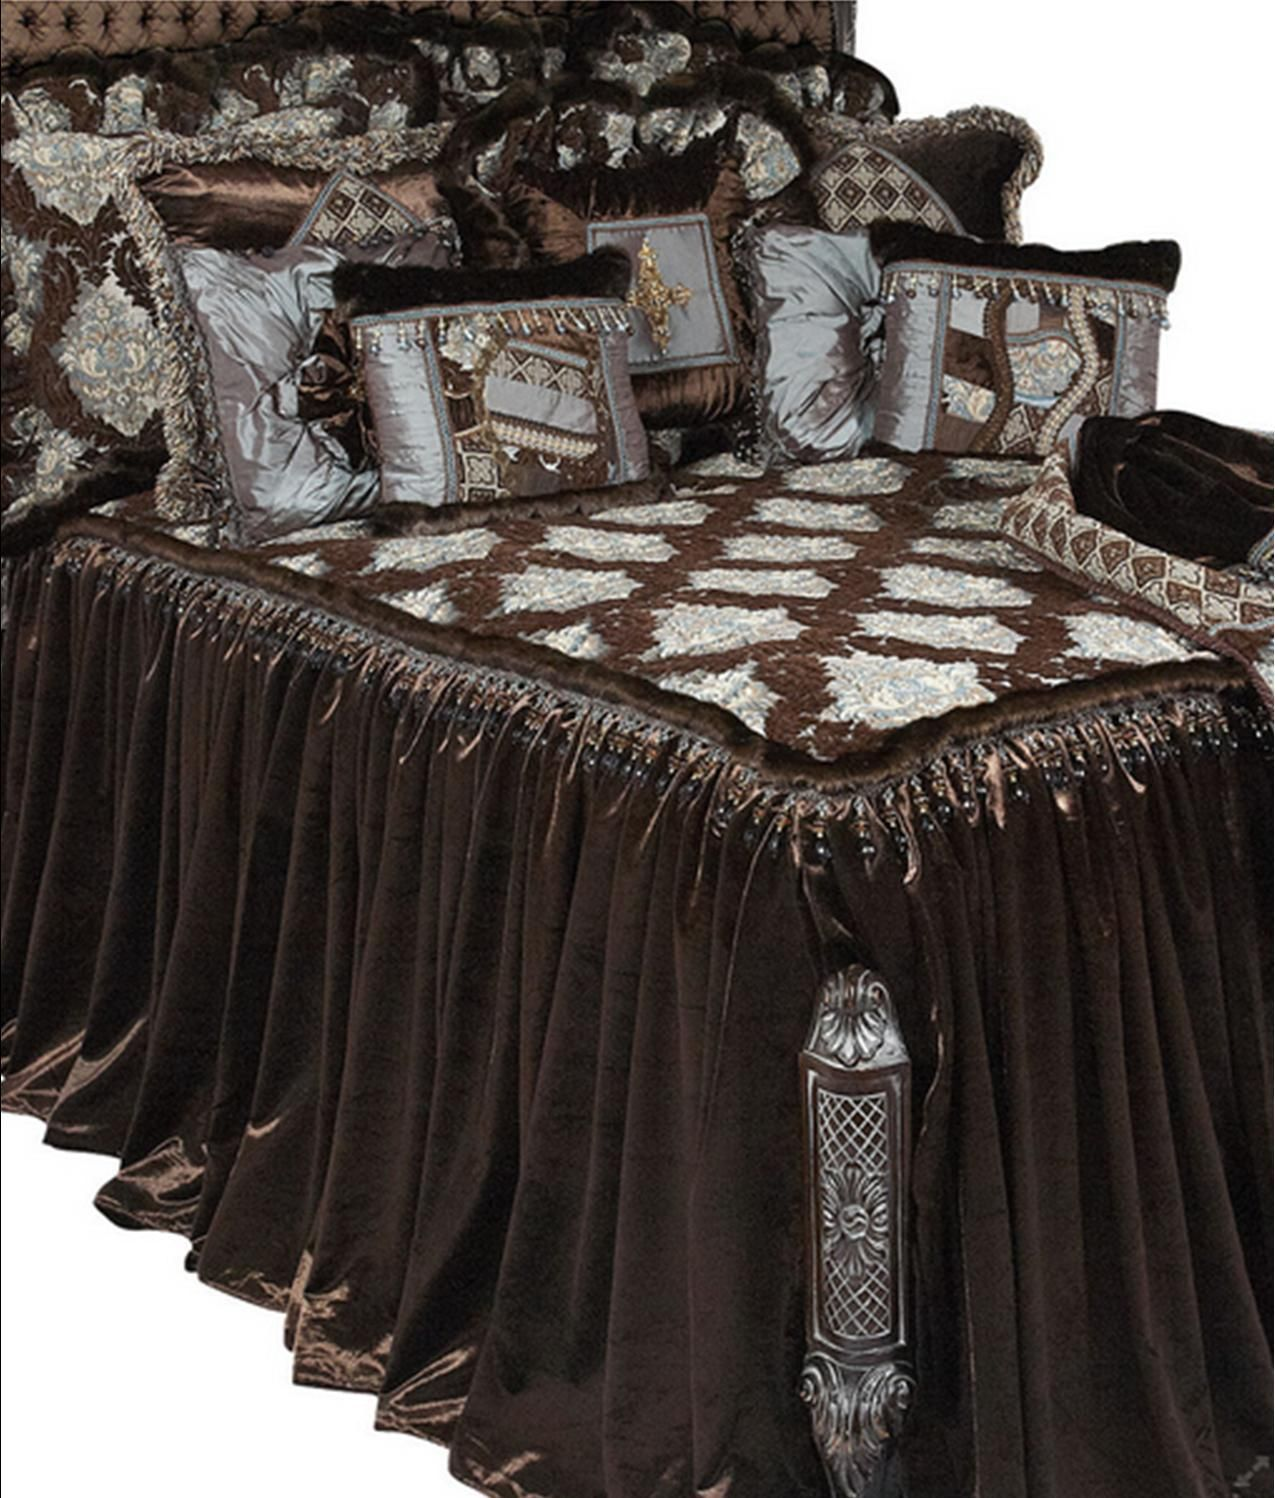 Beautiful Tuscan Style Luxury High End Bedding by Reilly-Chance